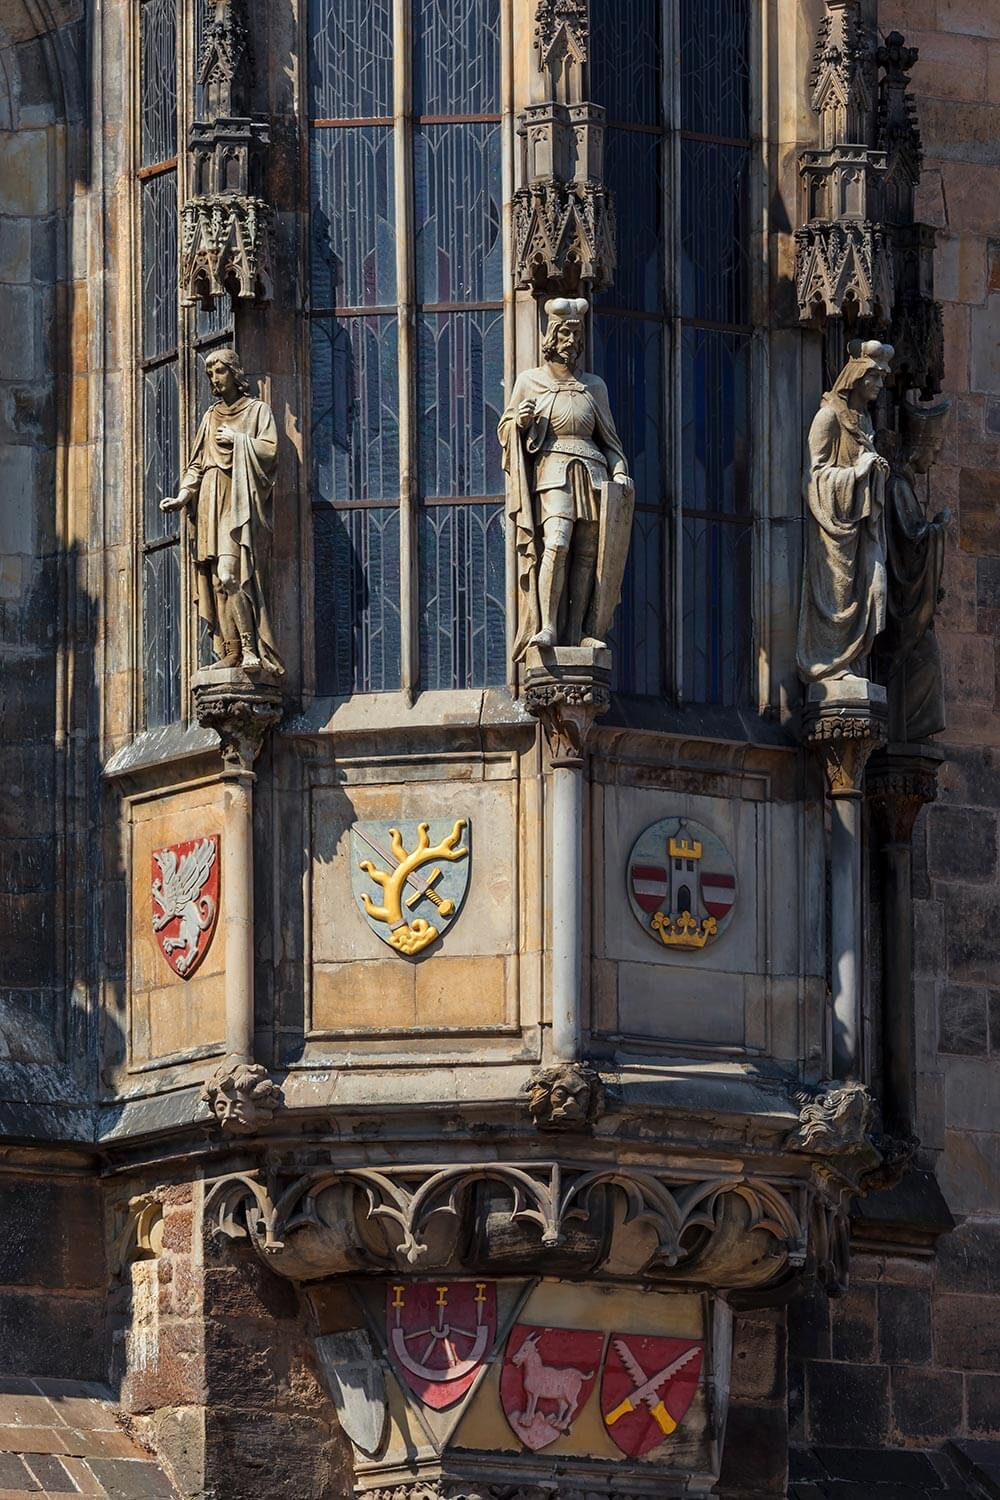 Detail of the Old Town City Hall in Prague, Czechia